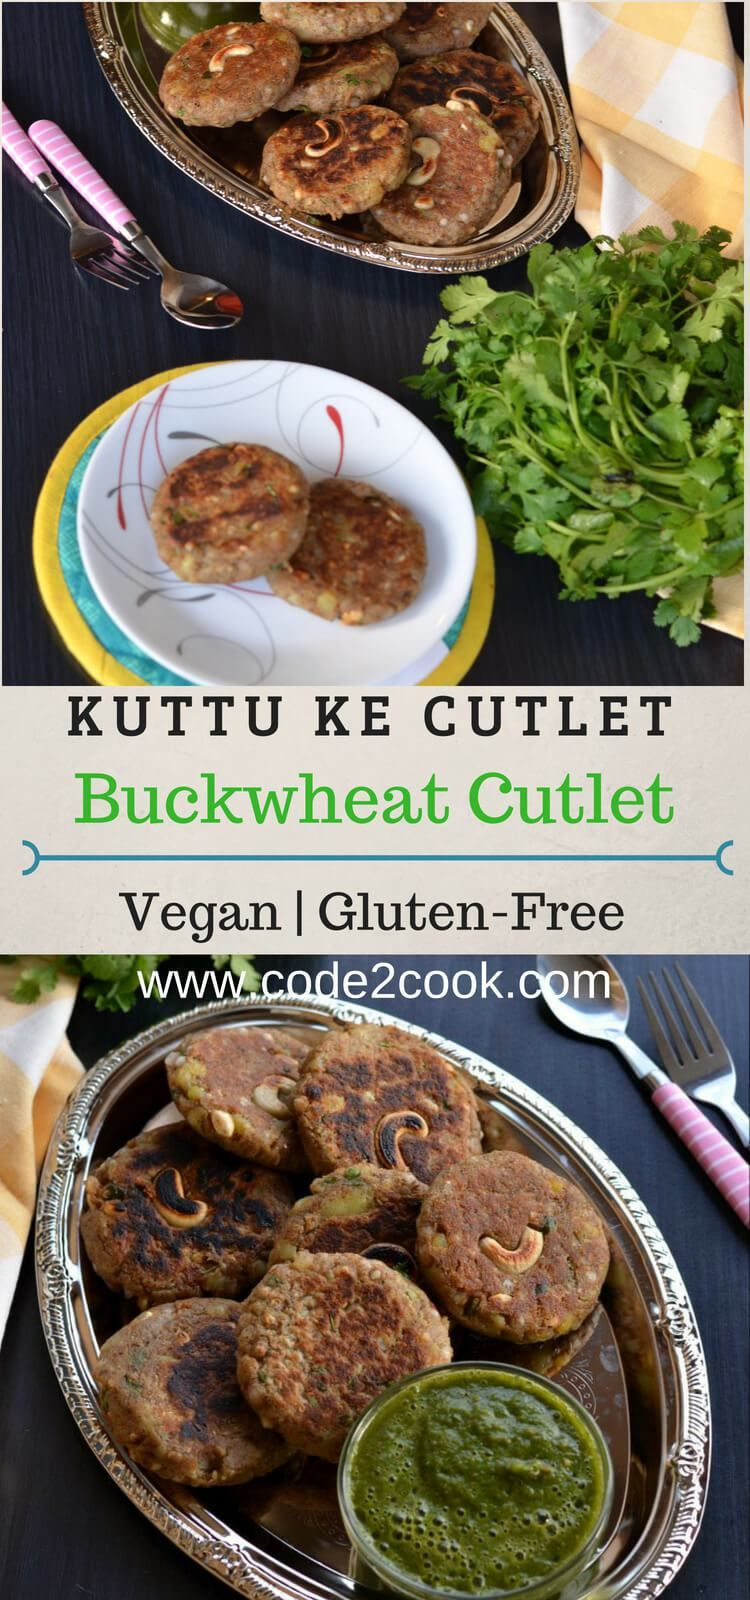 Buckwheat cutlets: recipes. How to cook buckwheat cutlets 73